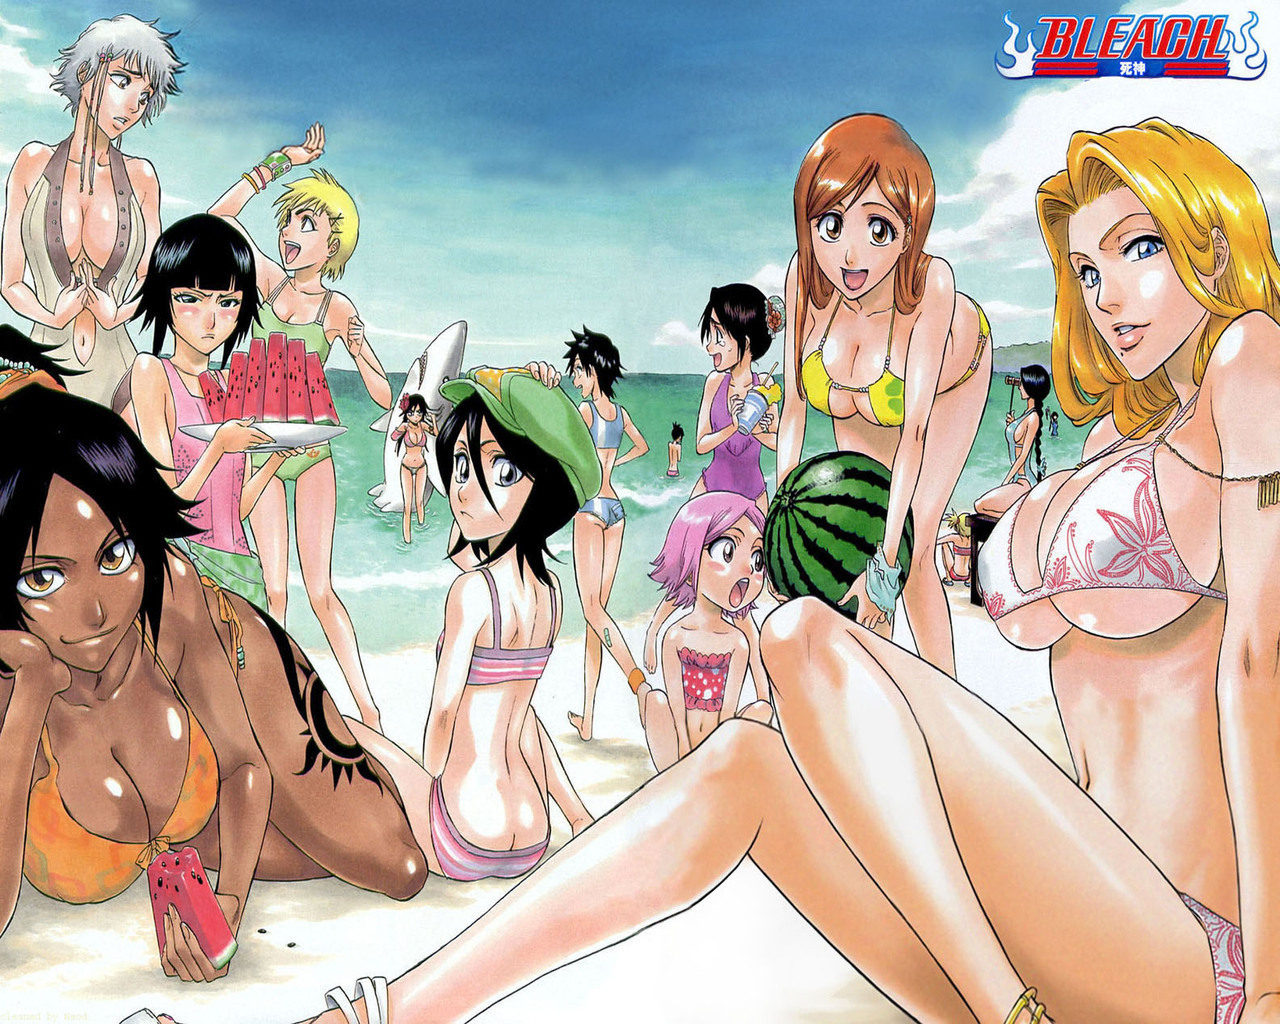 Bleach Girls at the playa